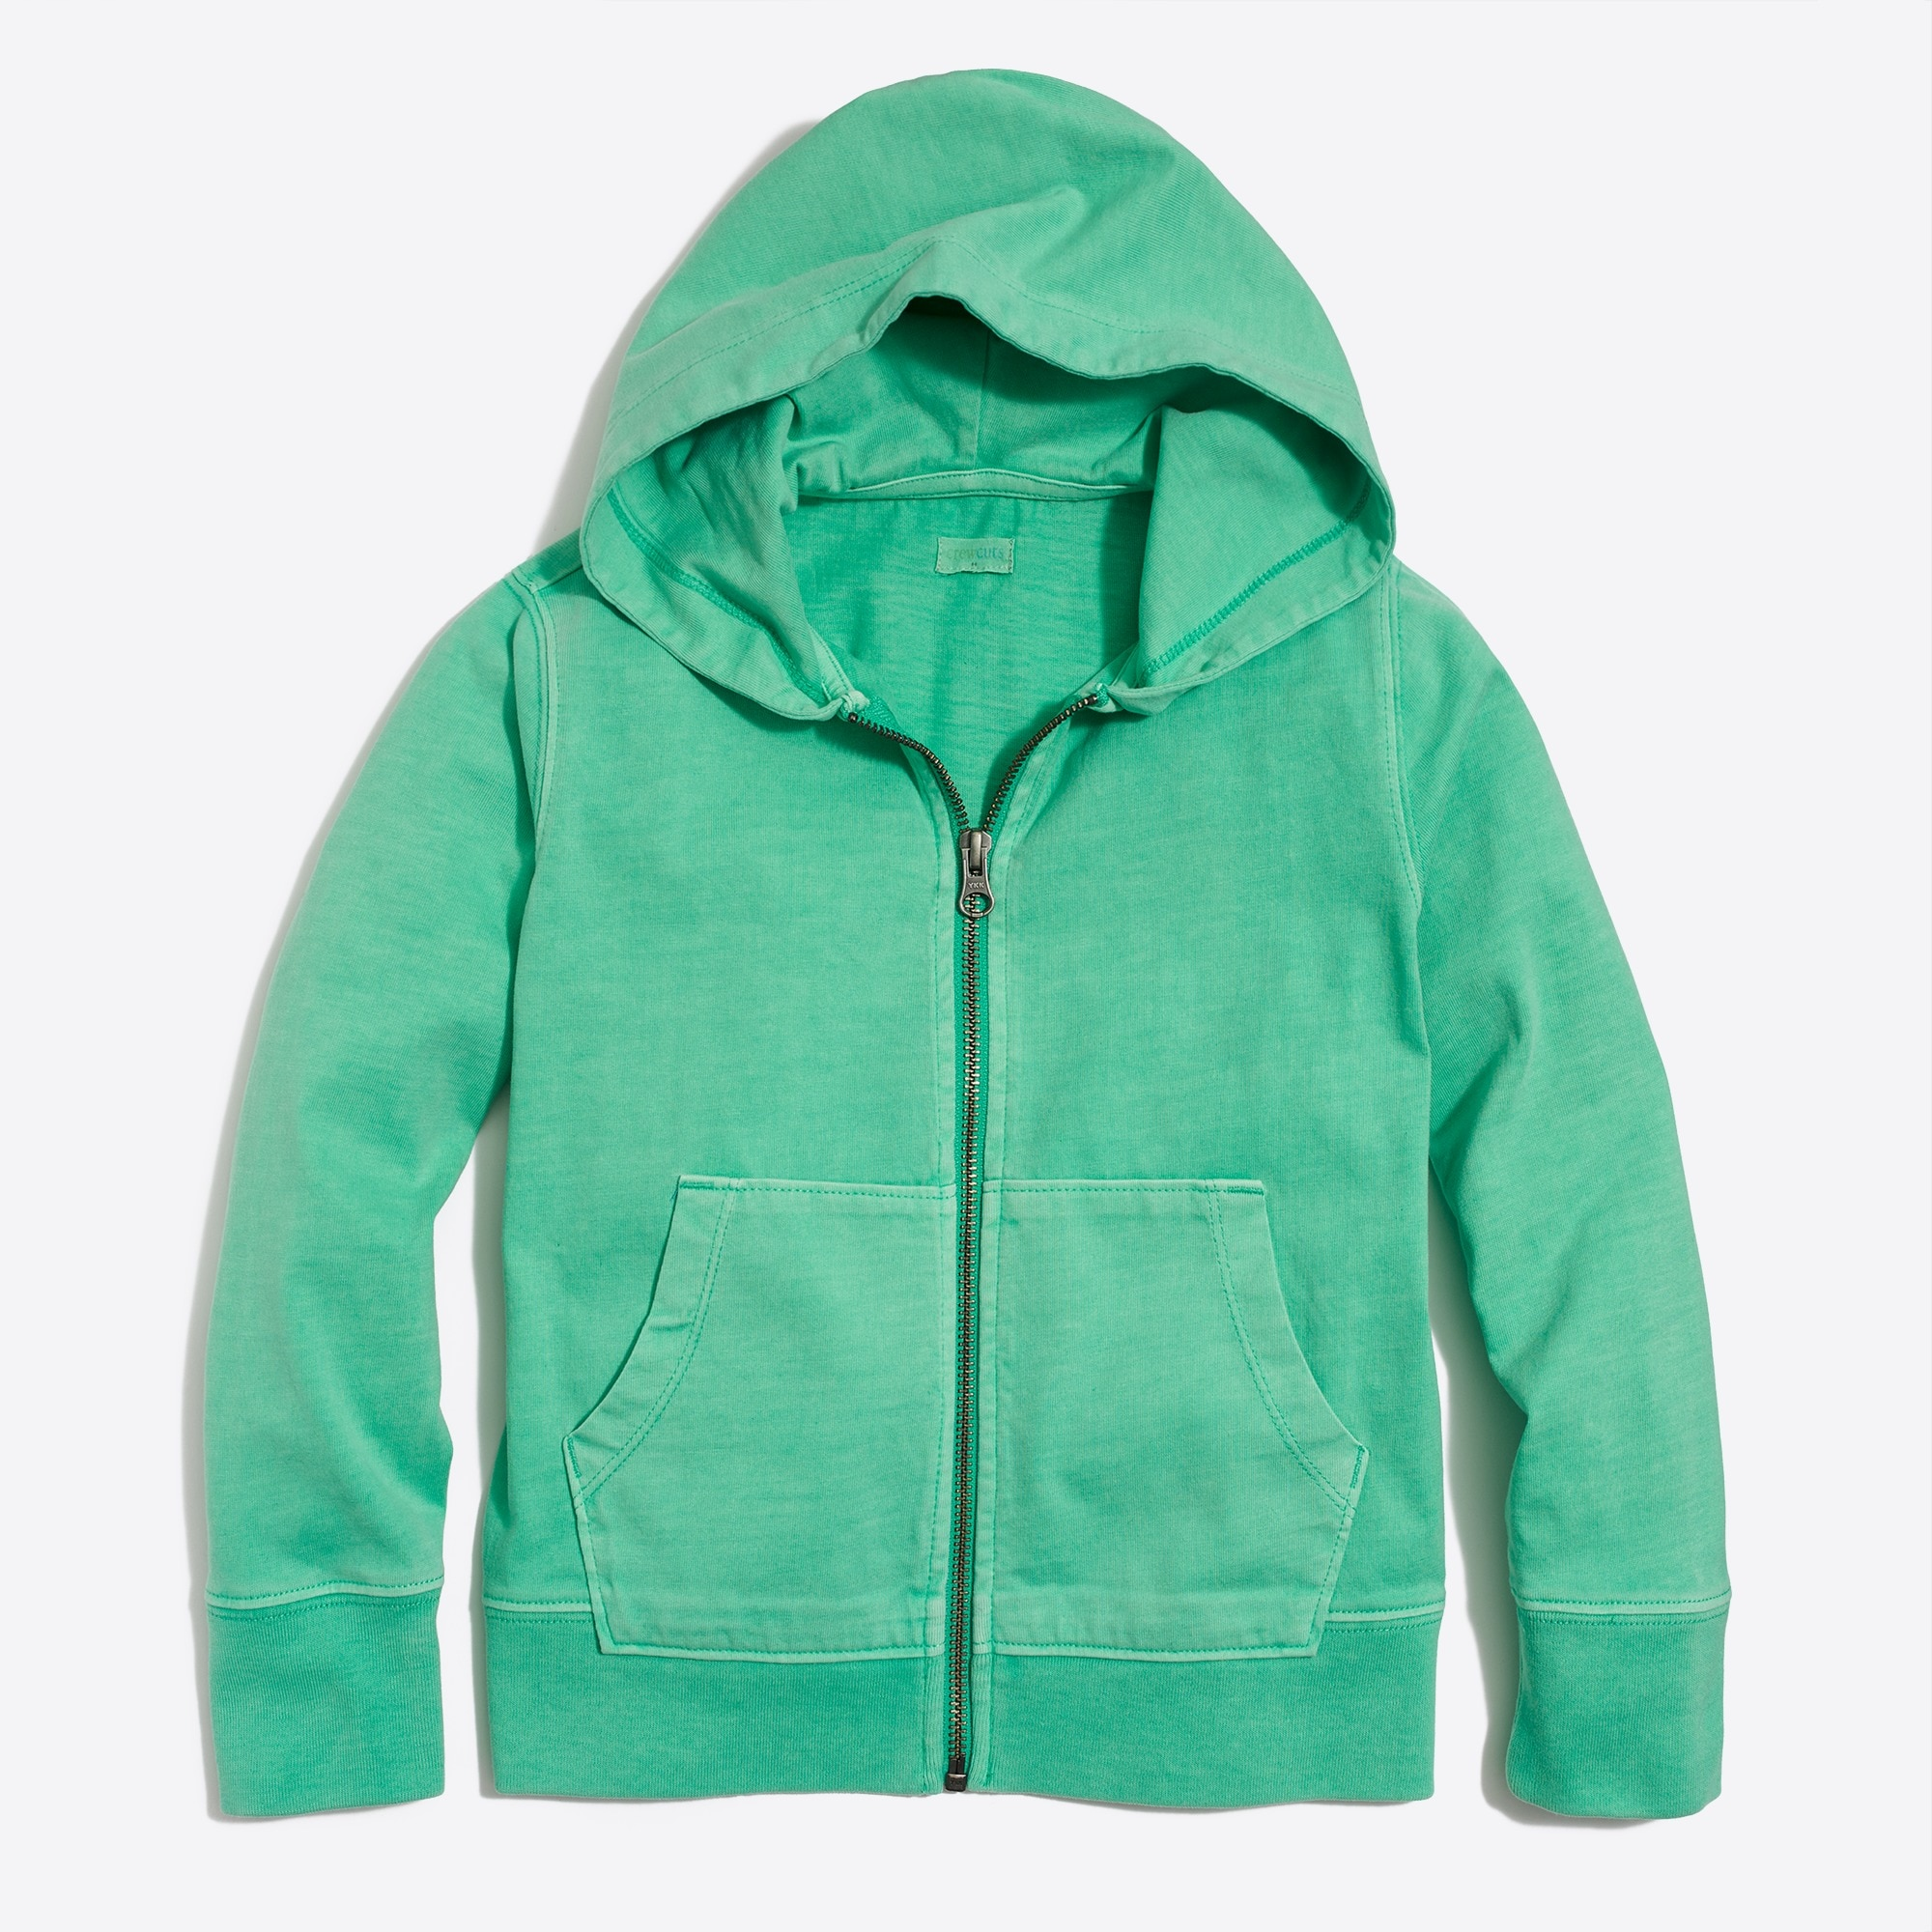 Boys' garment-dyed hoodie factoryboys the camp shop c